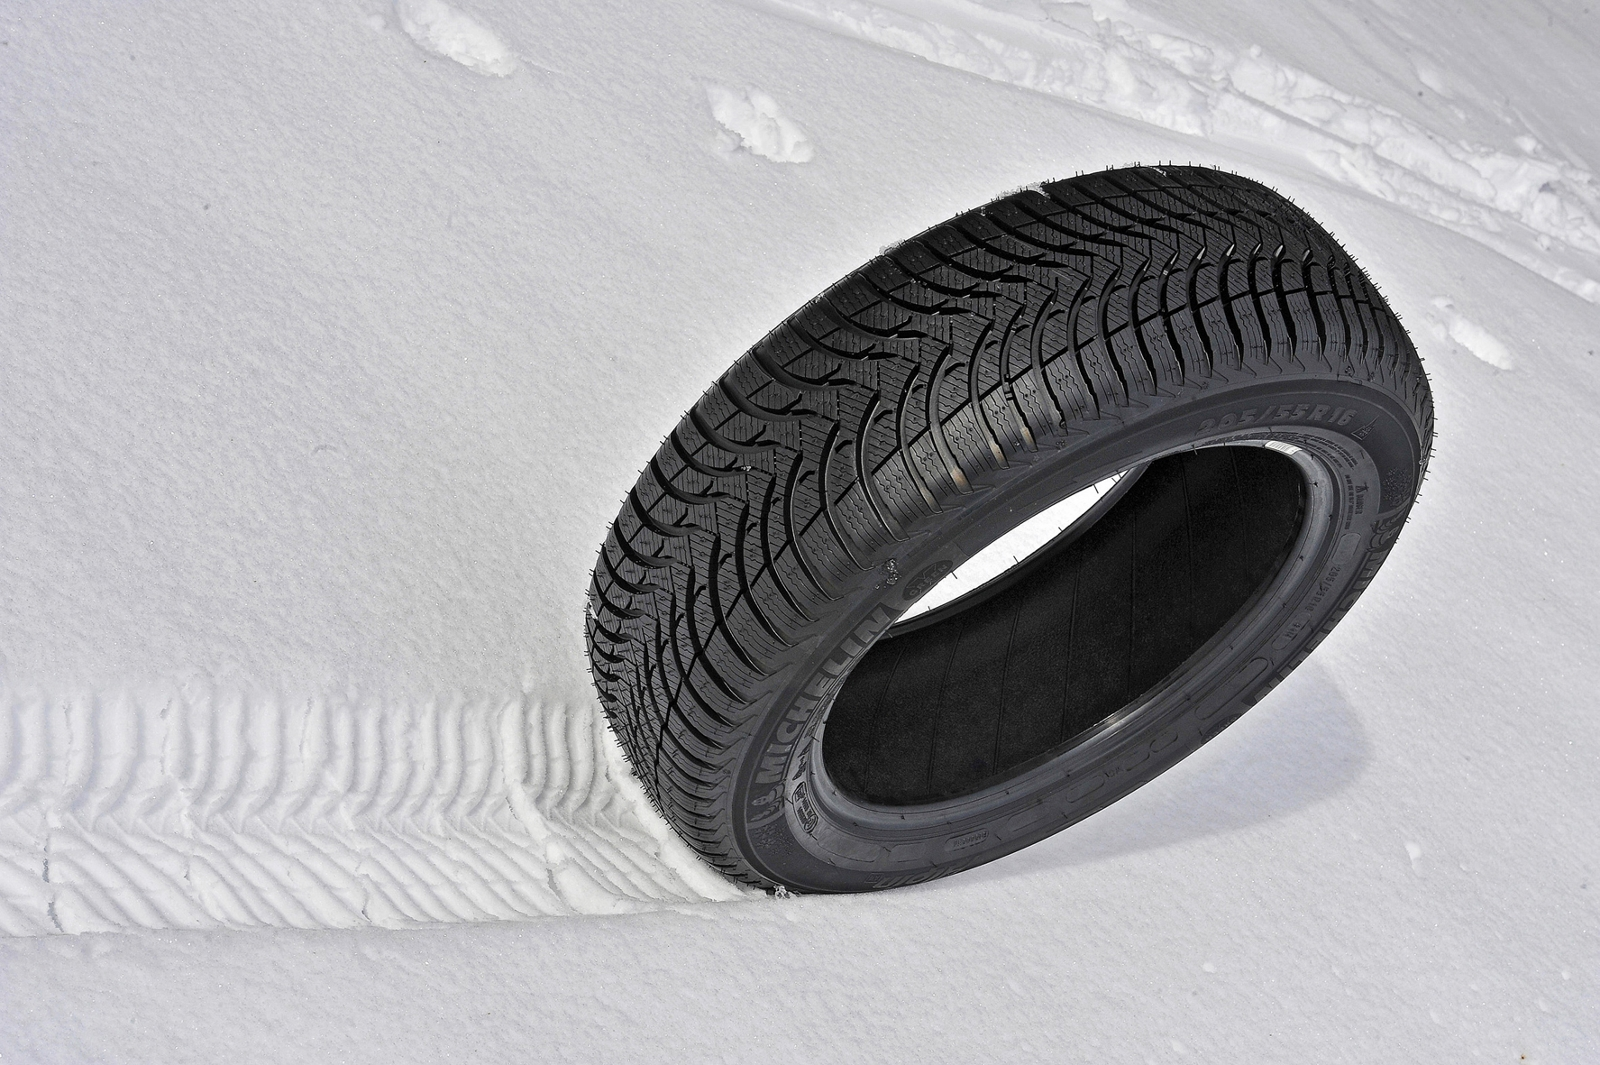 Winter tyres are designed to give grip in low temperatures